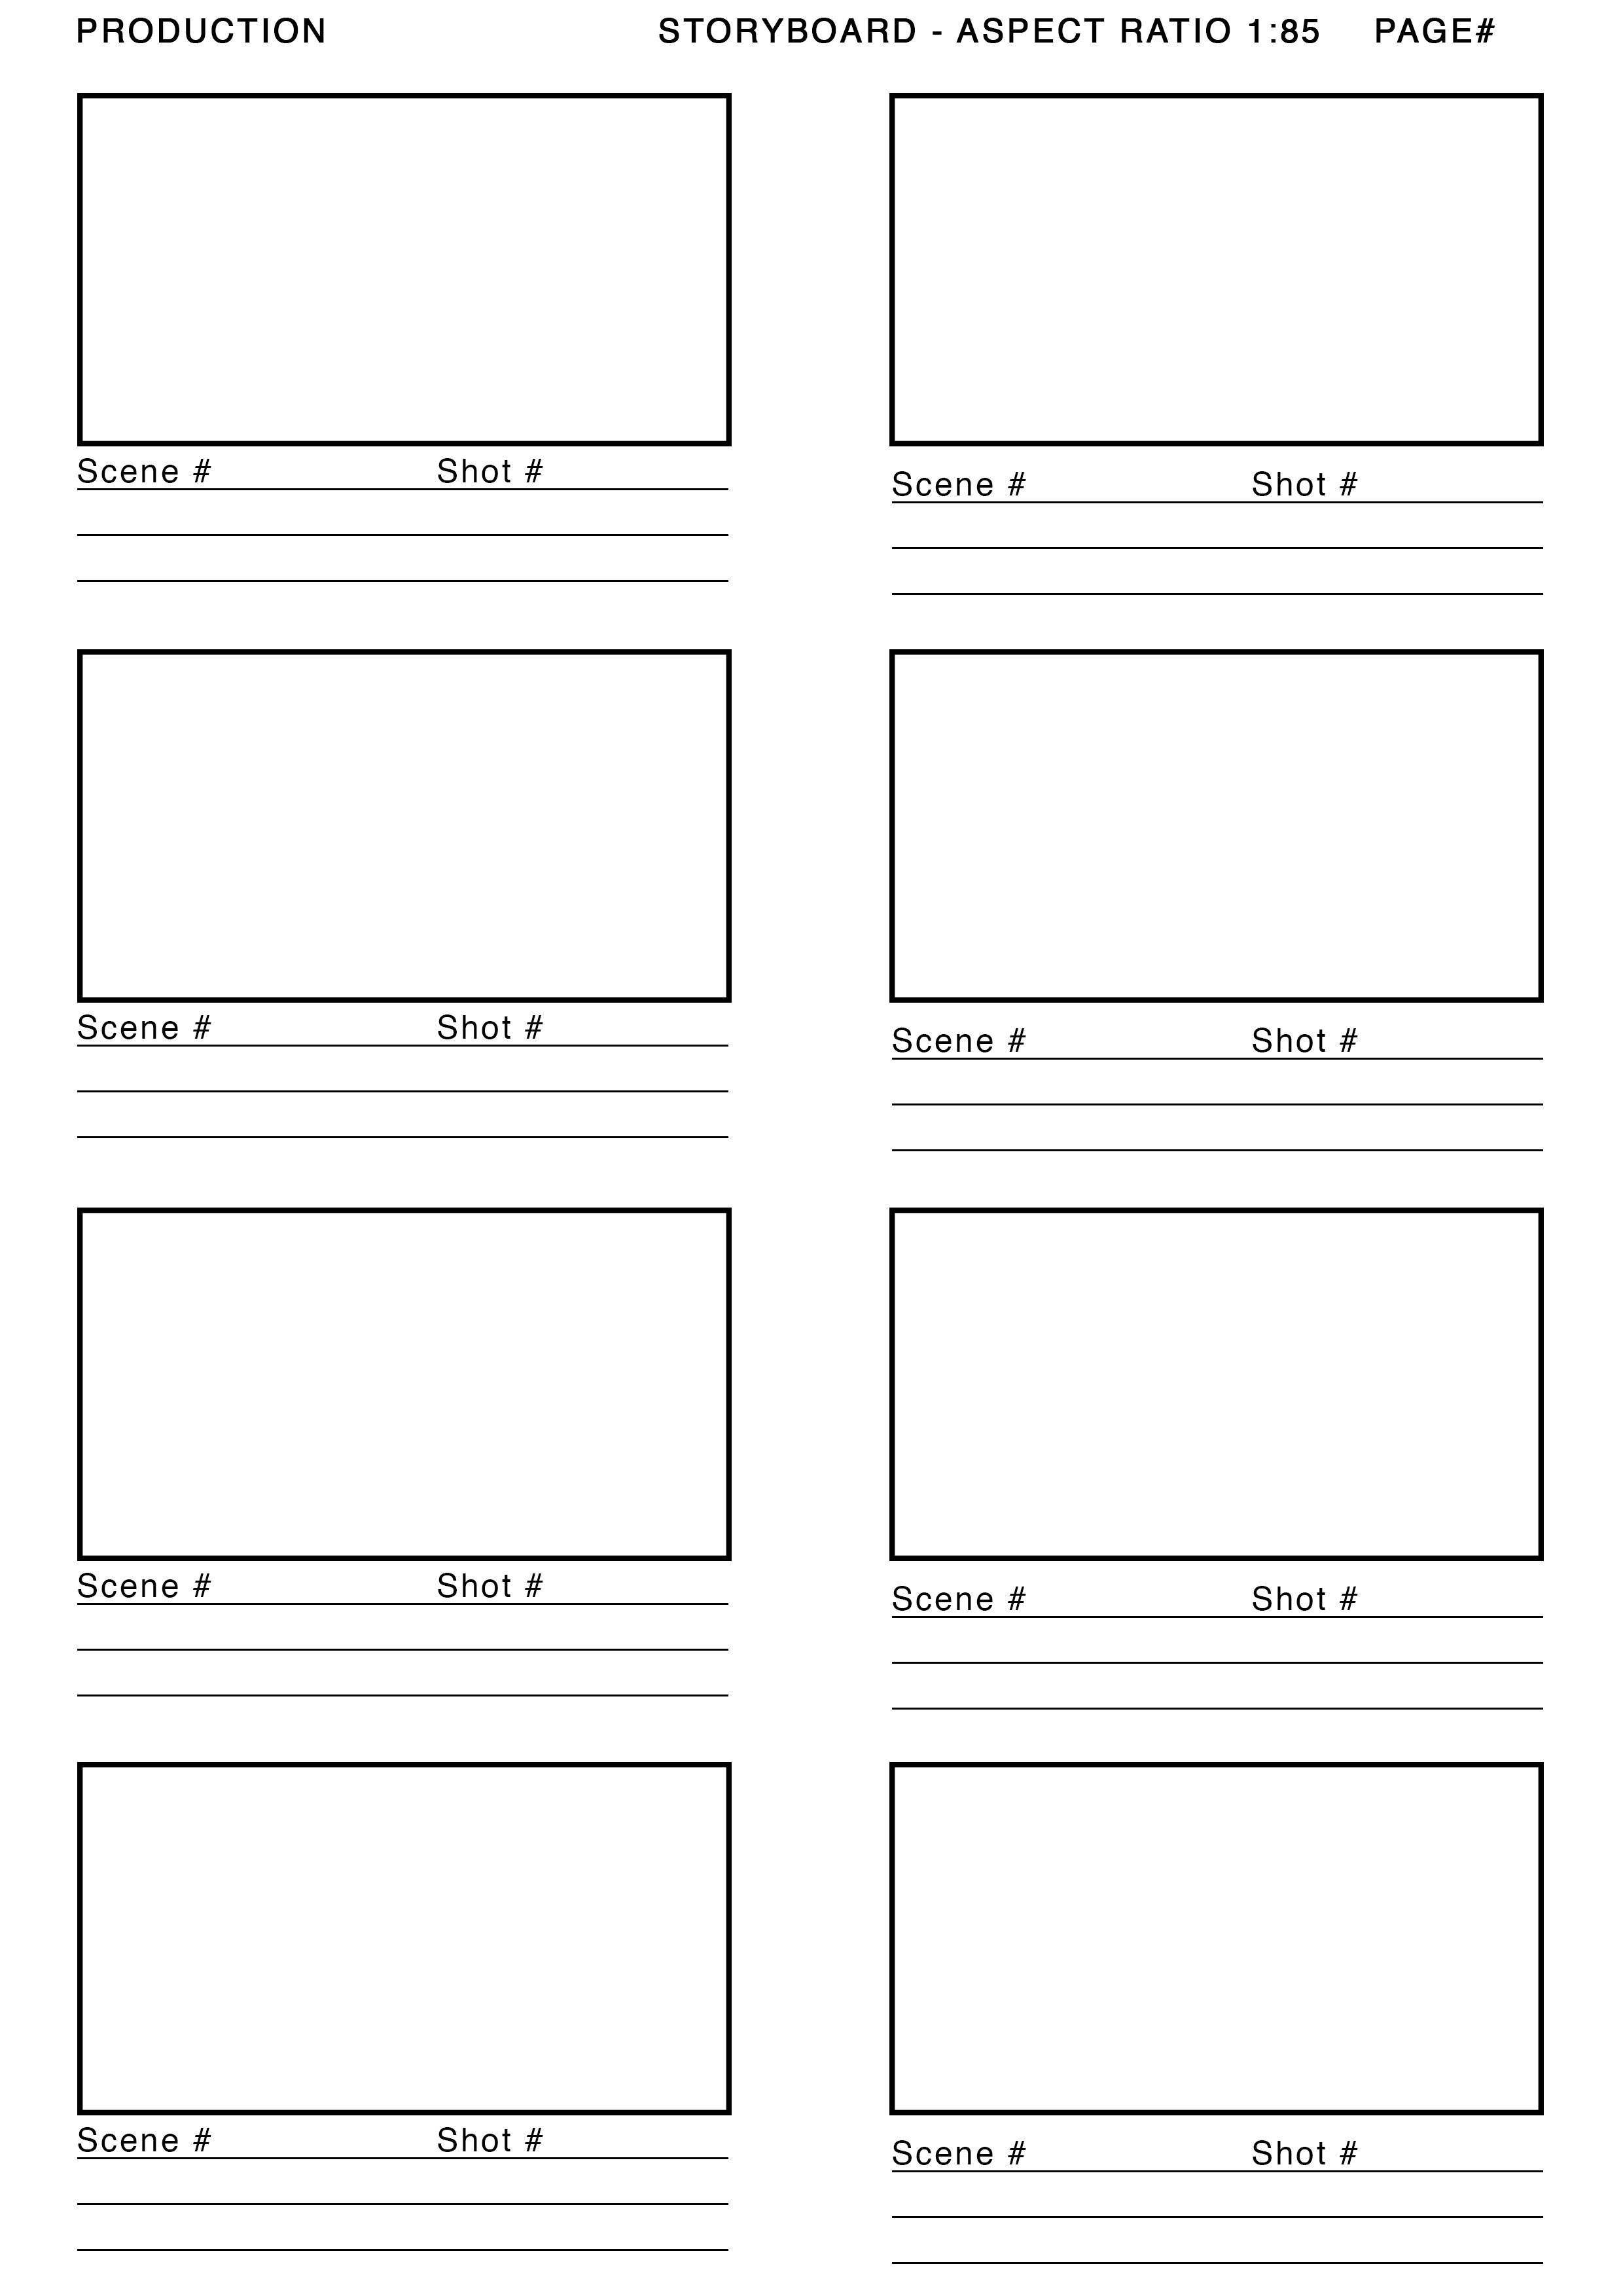 Related Image Storyboard Template Storyboard Ideas Storyboard